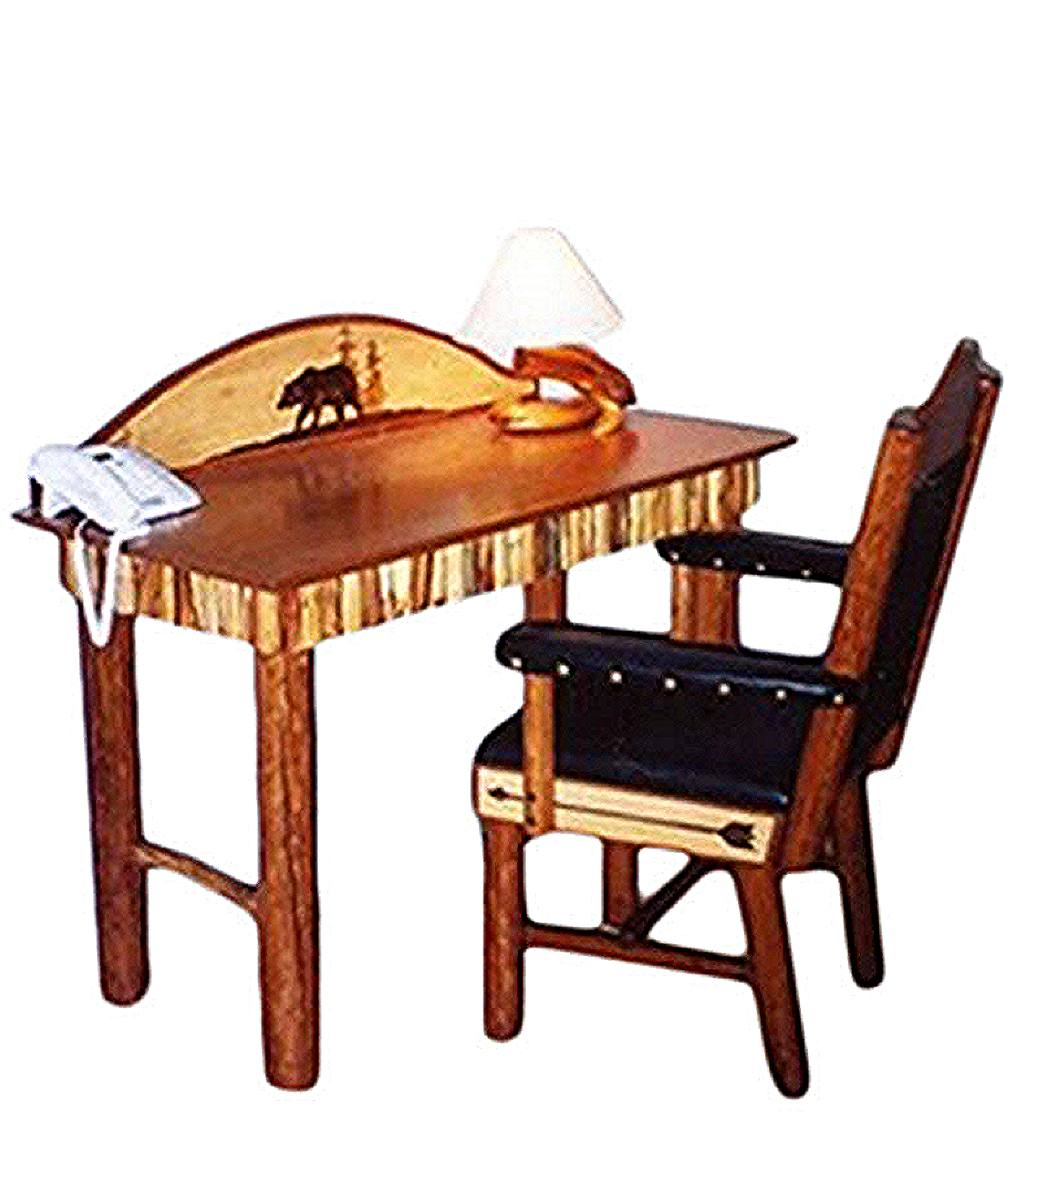 Molesworth style small writing desk and desk chair western furniture and decor from rustic artistry